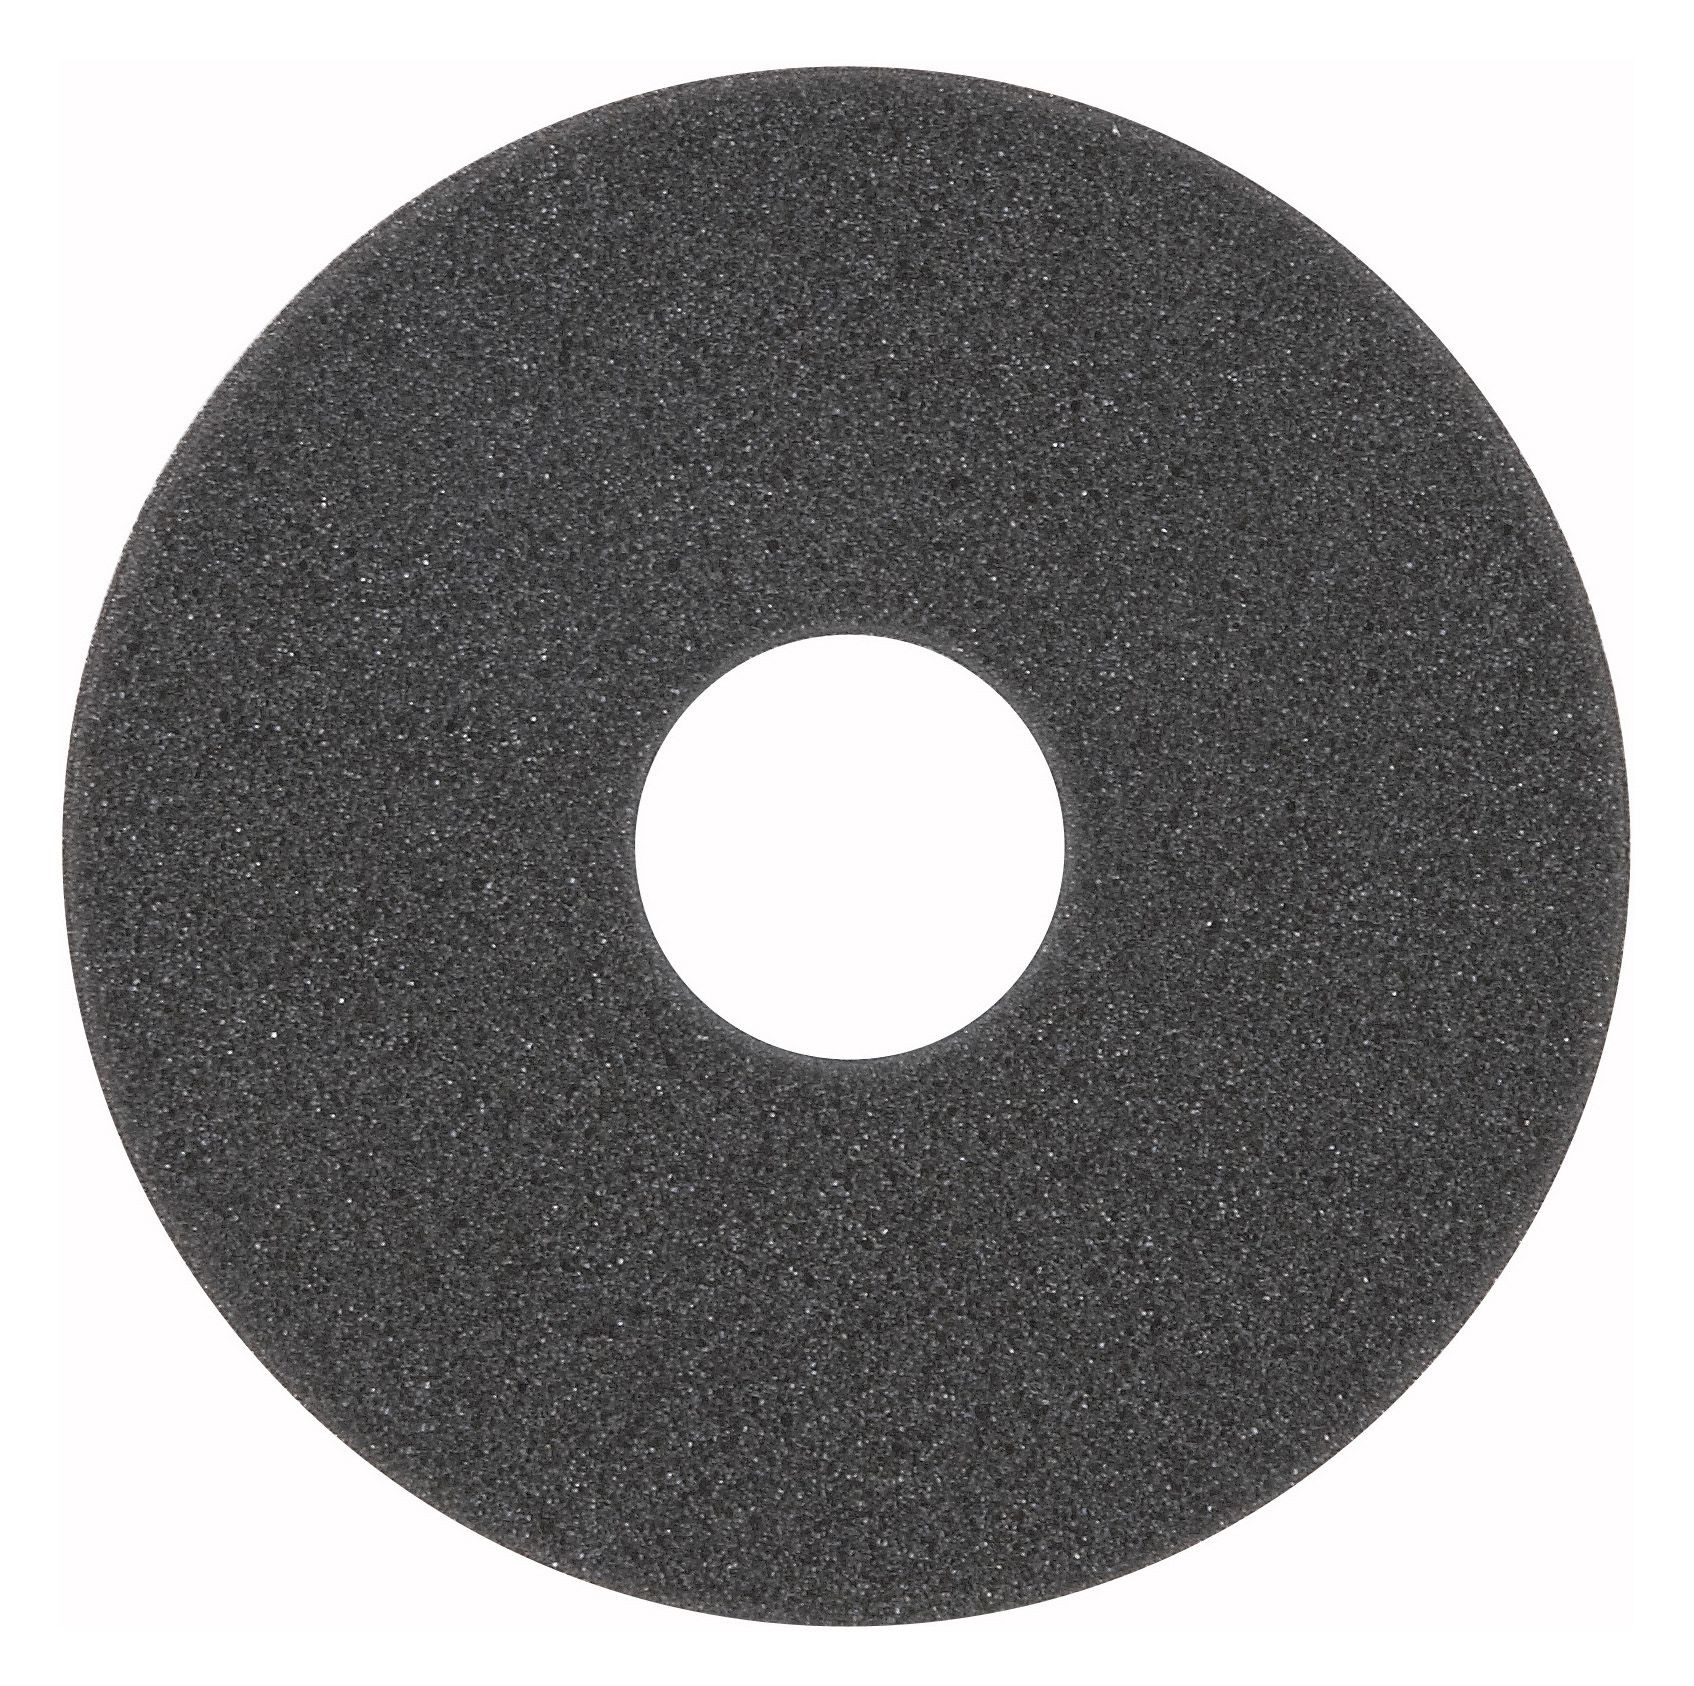 Winco gr-3s Replacement Sponge for GR-3